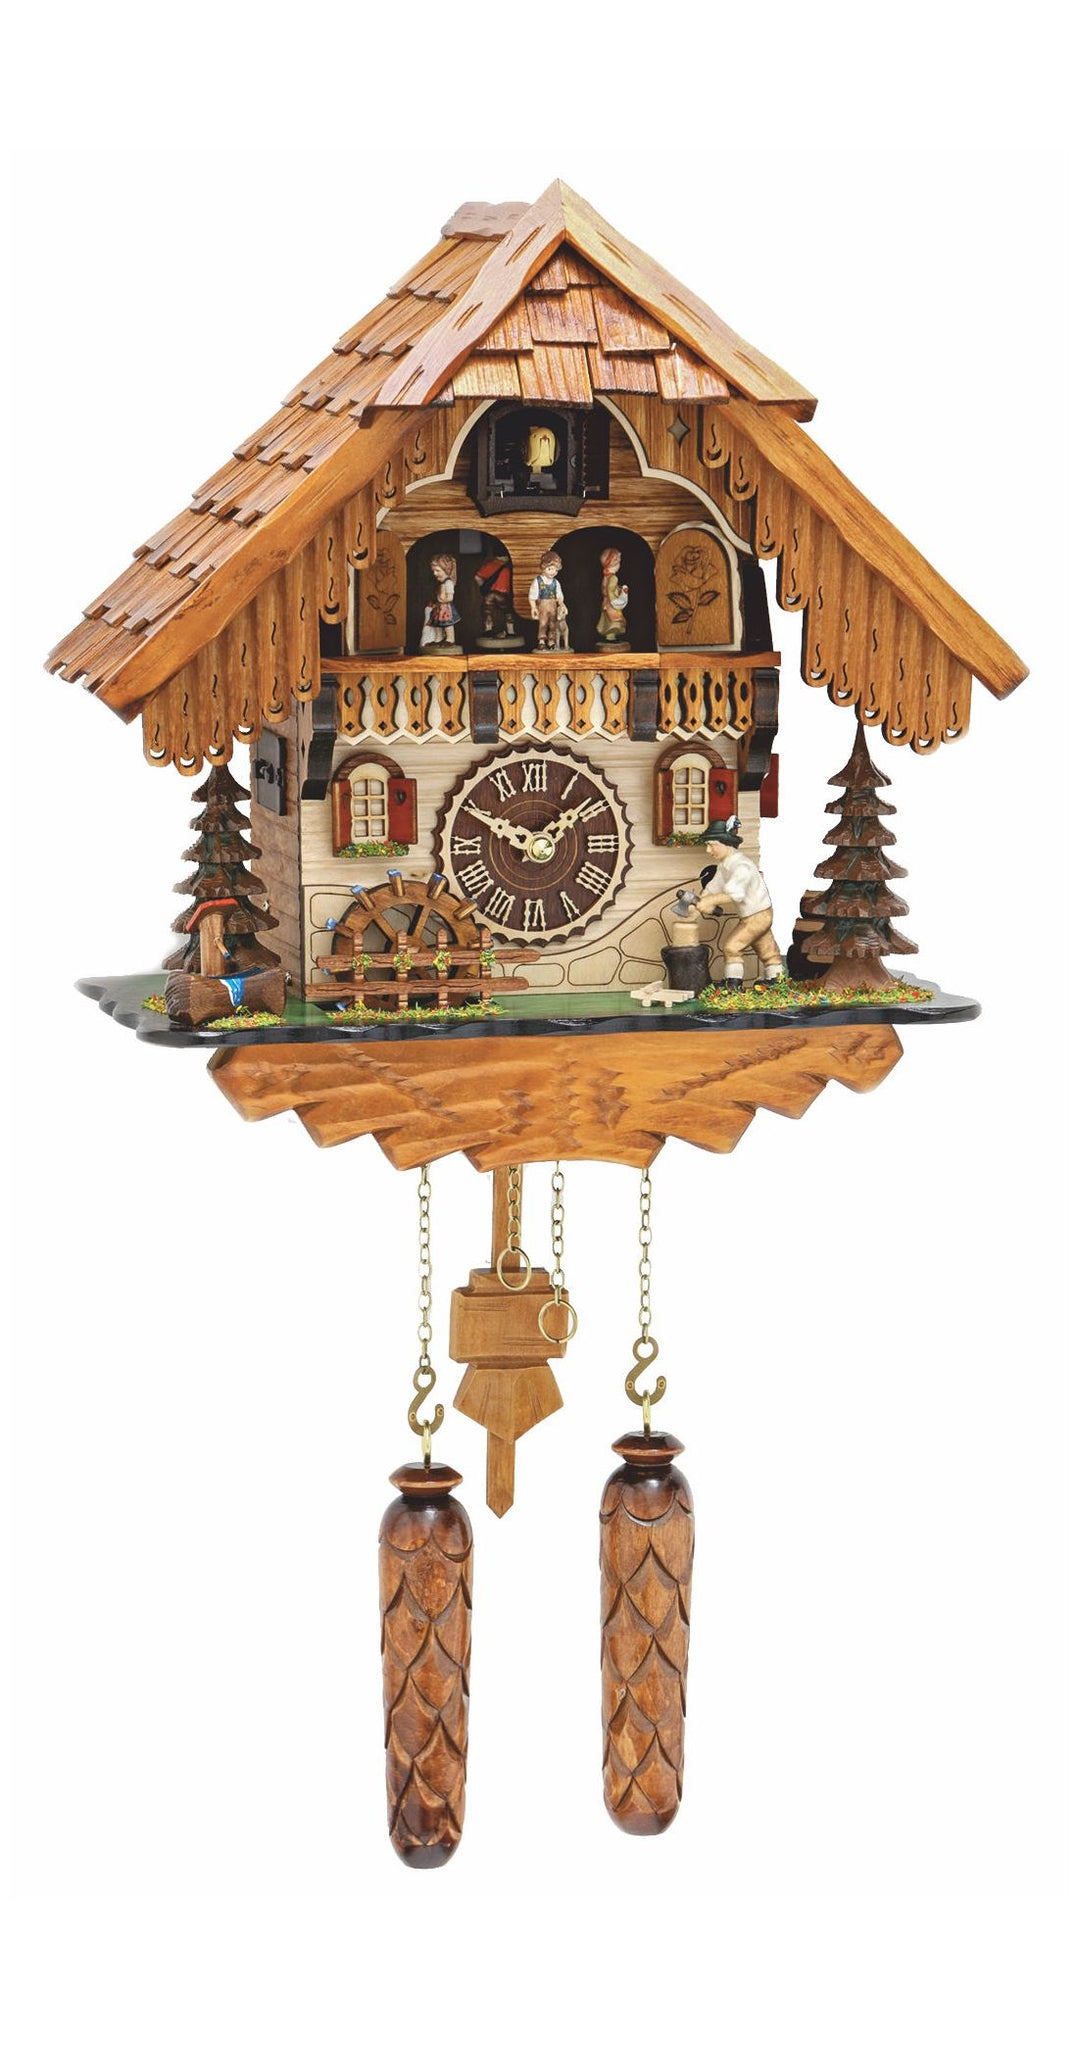 Quartz Cuckoo Clock Black Forest House Chopper and Wheel with Music - Cuckoo Clock Meister